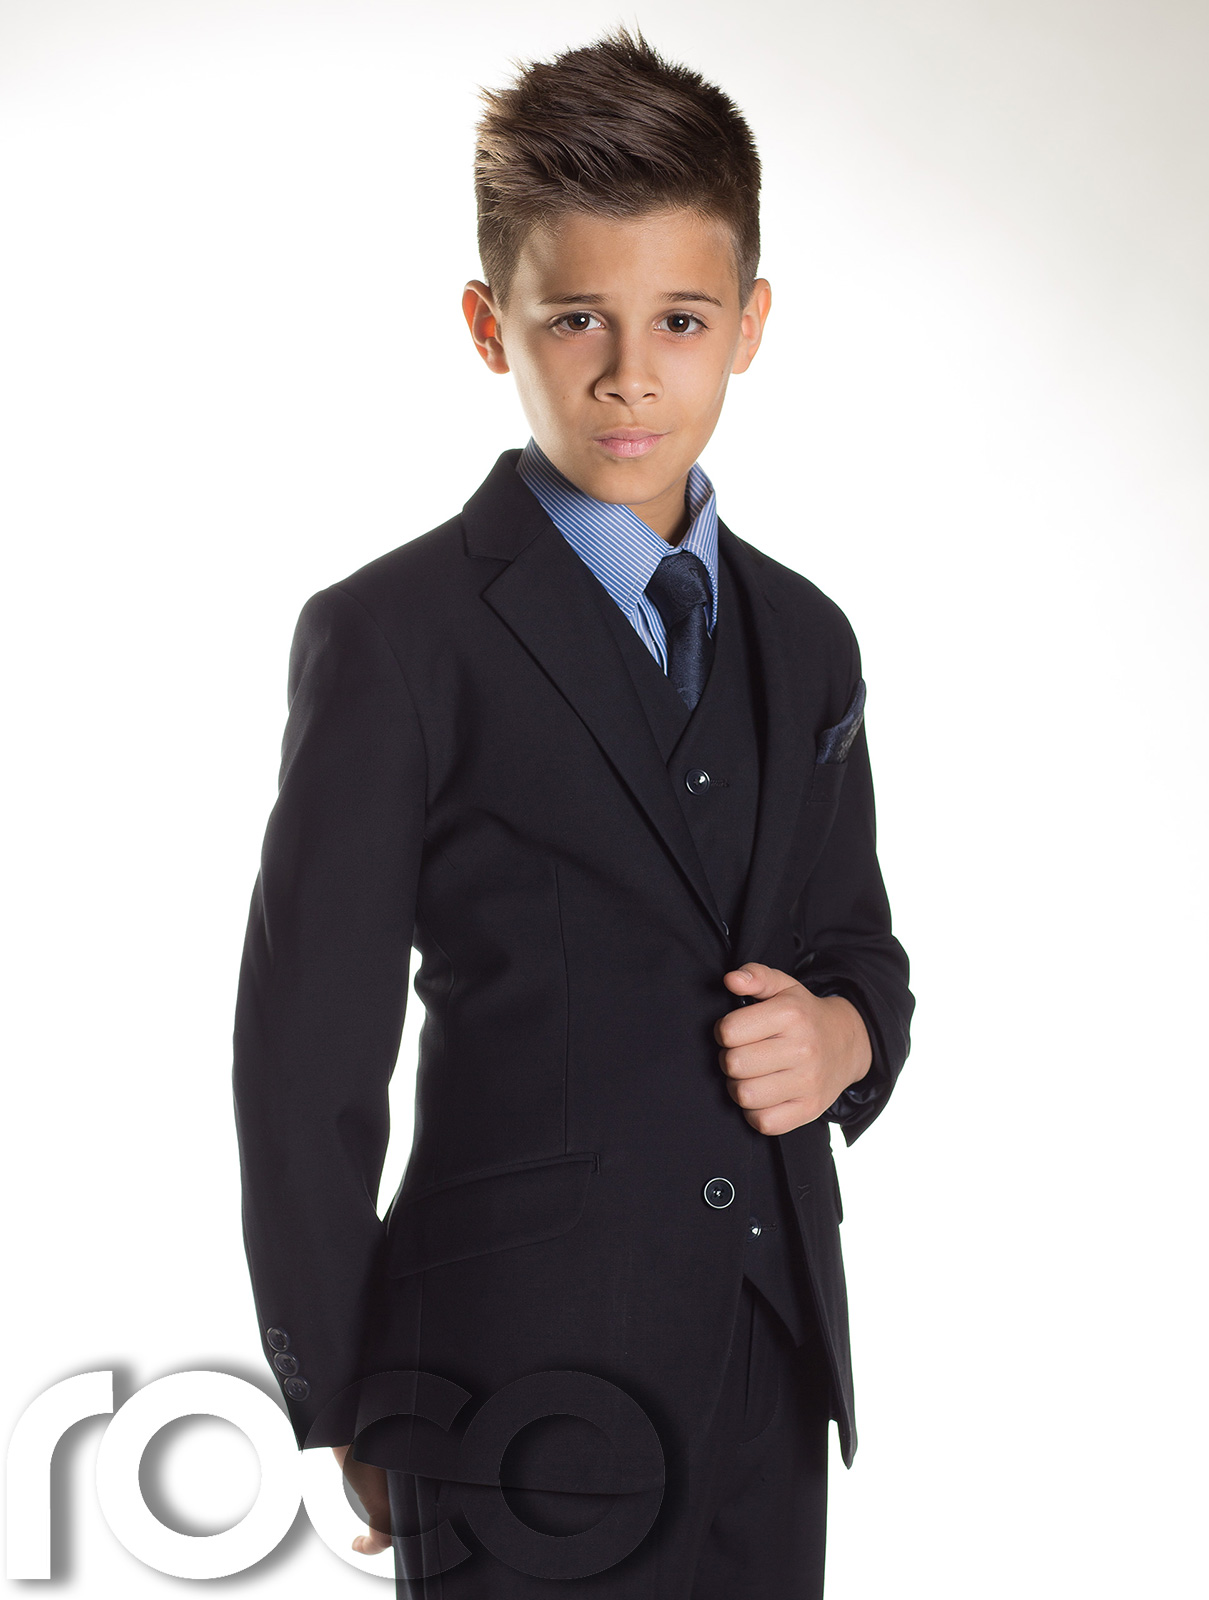 Buy Boys wedding suits from Occasion Wear for Kids. We have a full range of all colors boys wedding suits including 3 piece, 4 piece and 5 piece kids wedding suits. 4 piece and 5 piece boys wedding suits. Wedding is an occasion on which everybody wants to look handsome and charming. The next thing that comes in mind is the quality of.